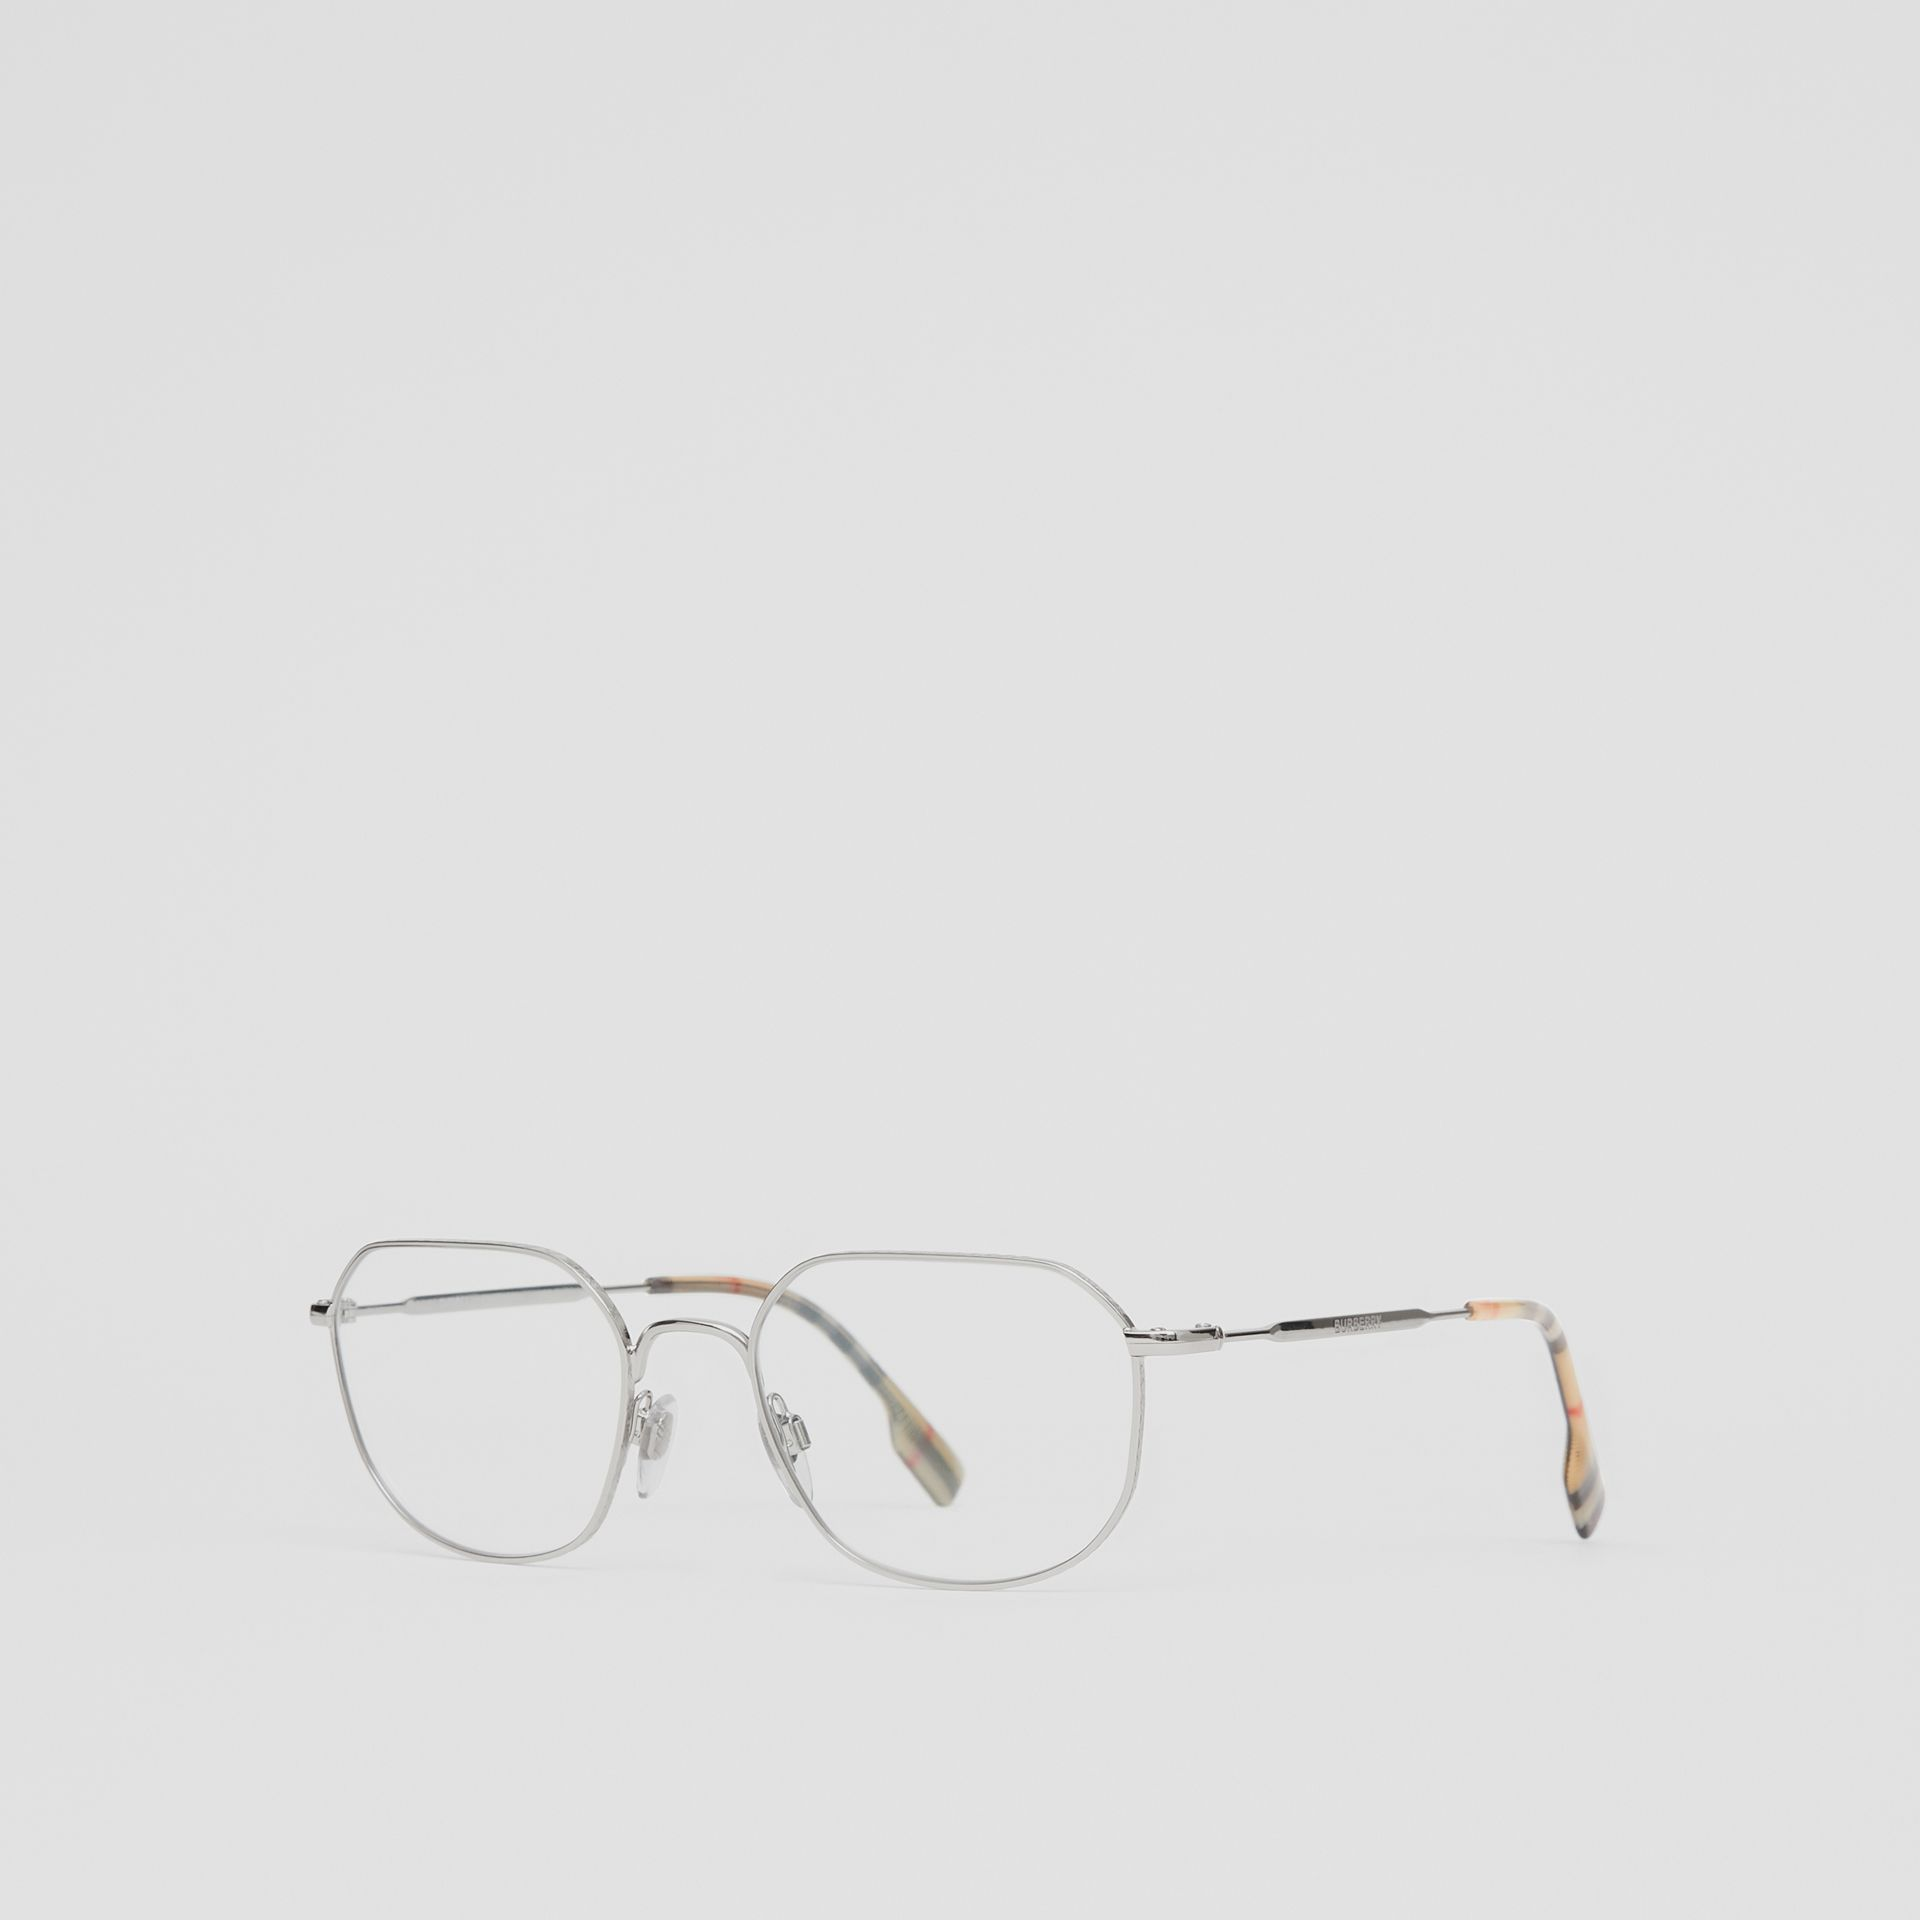 Palladium-plated Square Optical Frames in Silver - Women | Burberry United Kingdom - gallery image 5